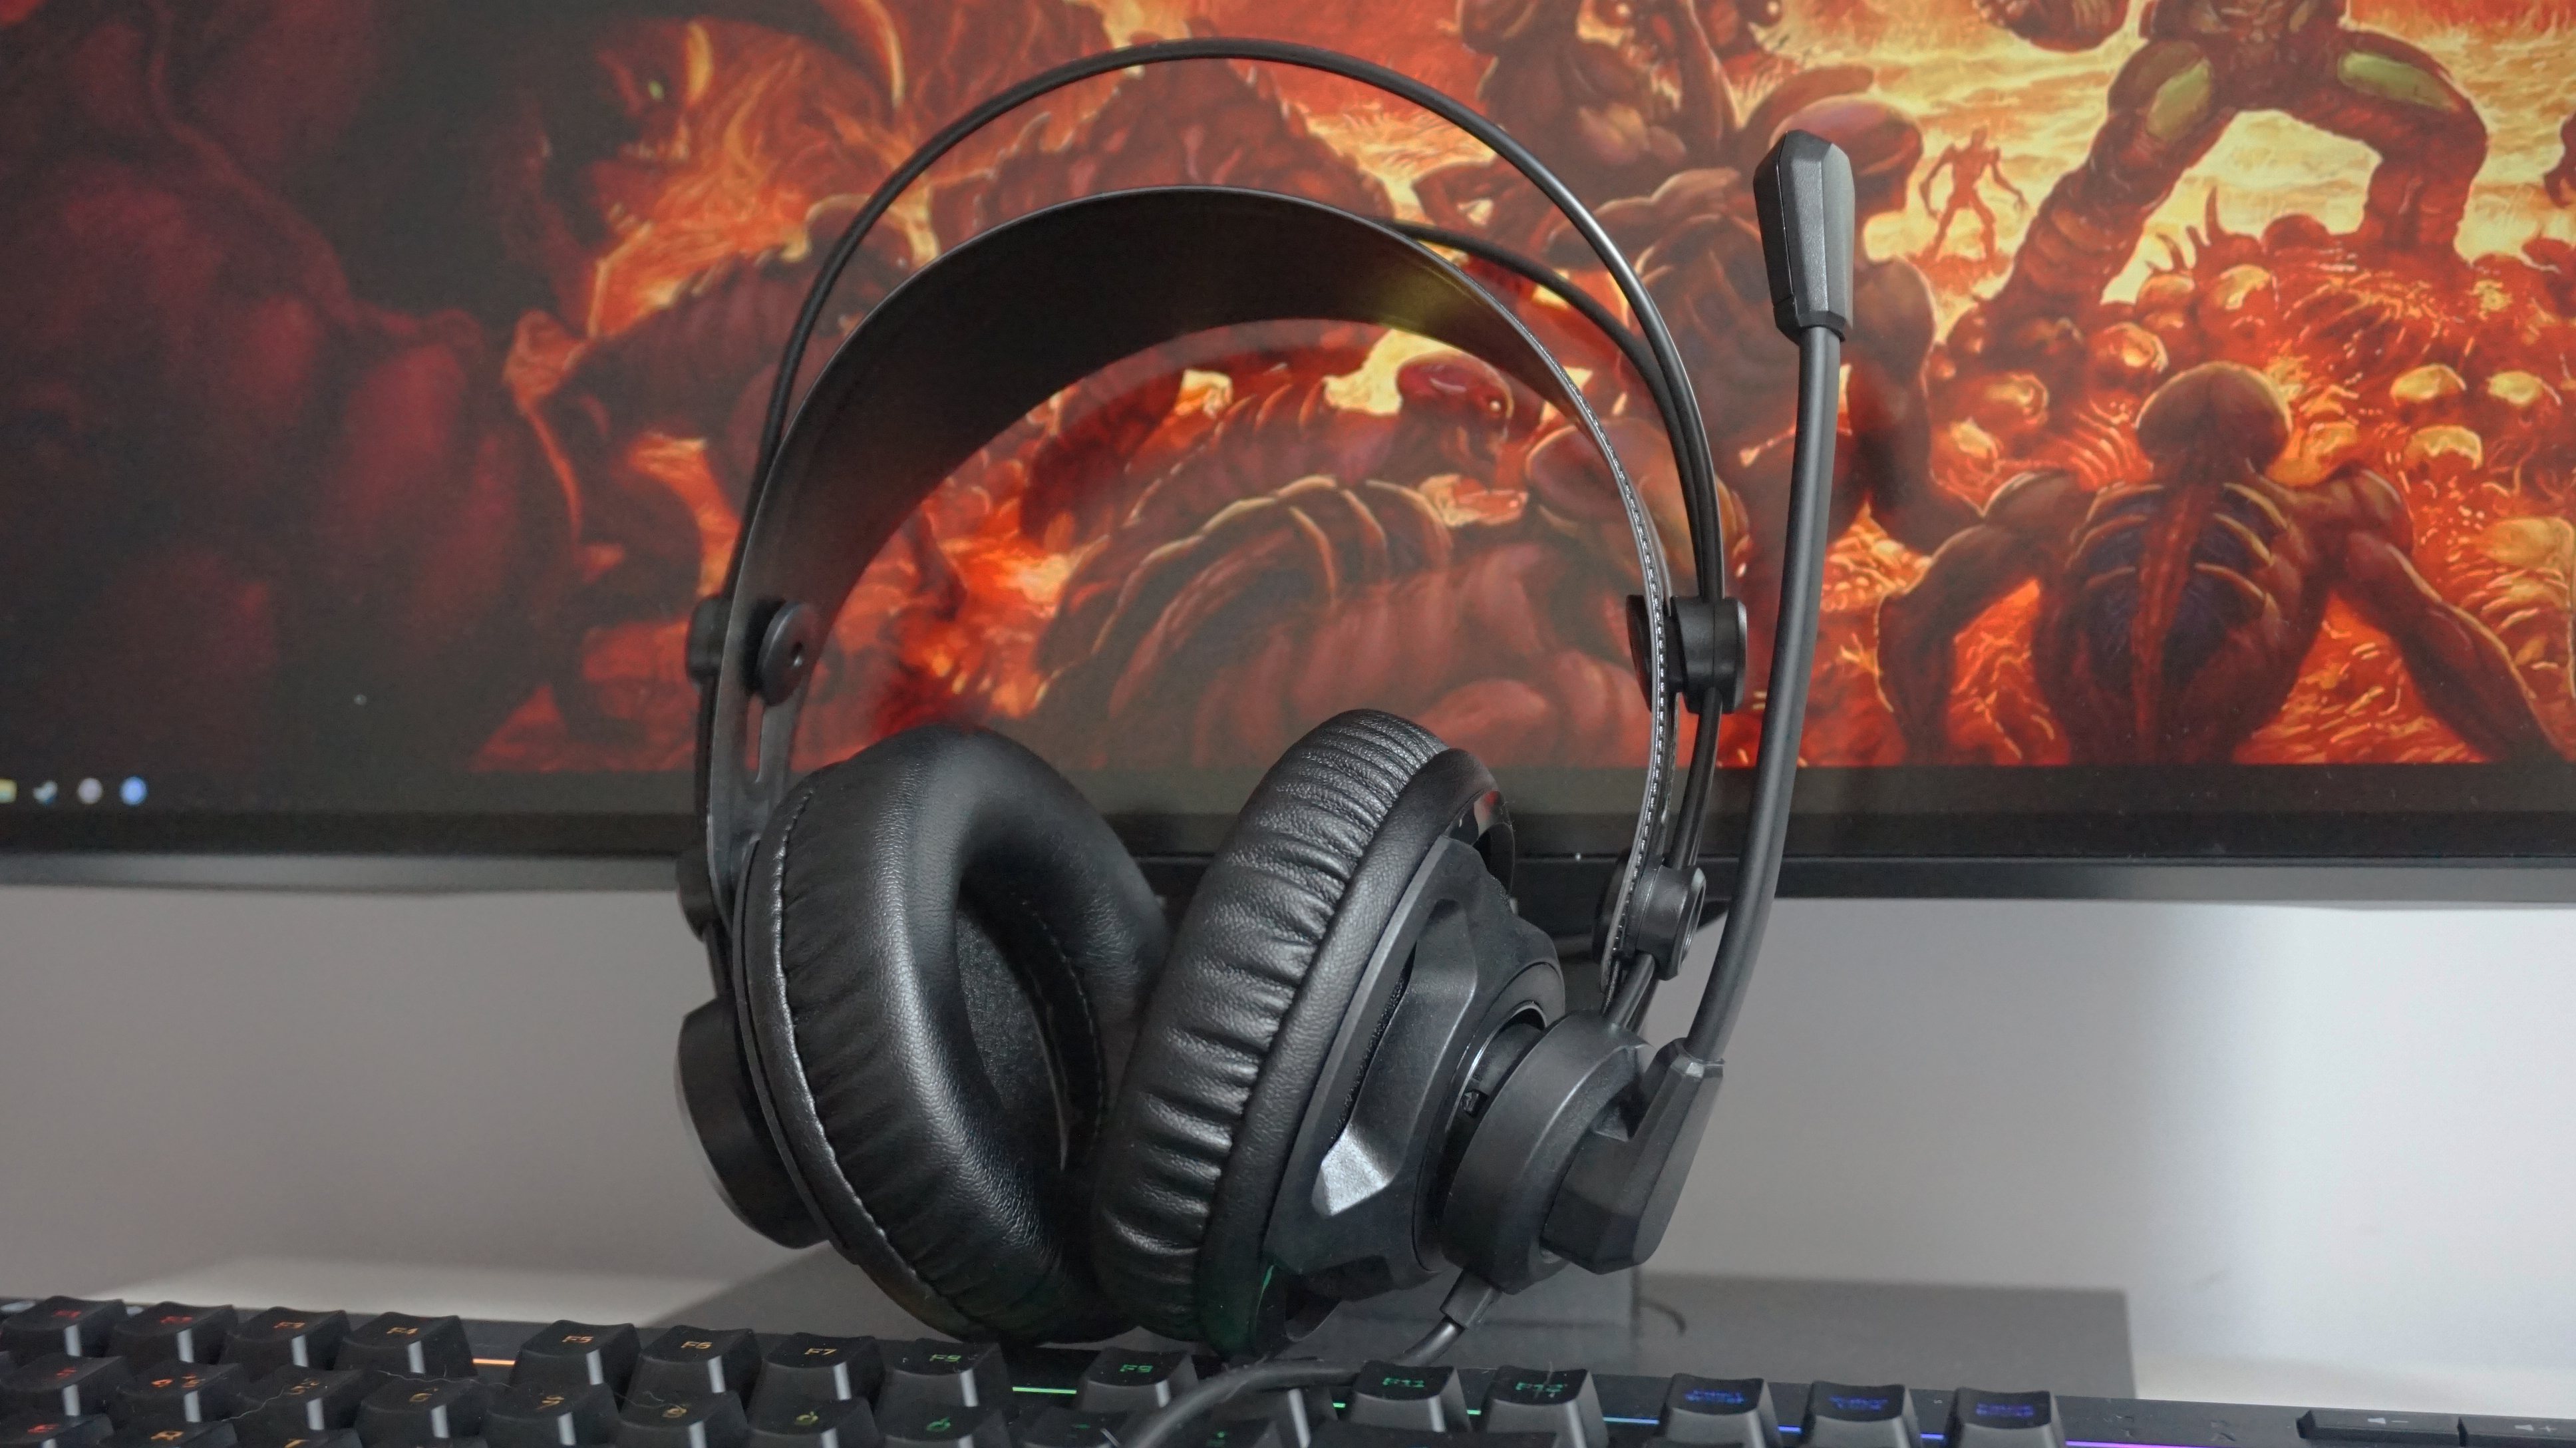 Best gaming headset 2019: Our top wired and wireless headsets for PC